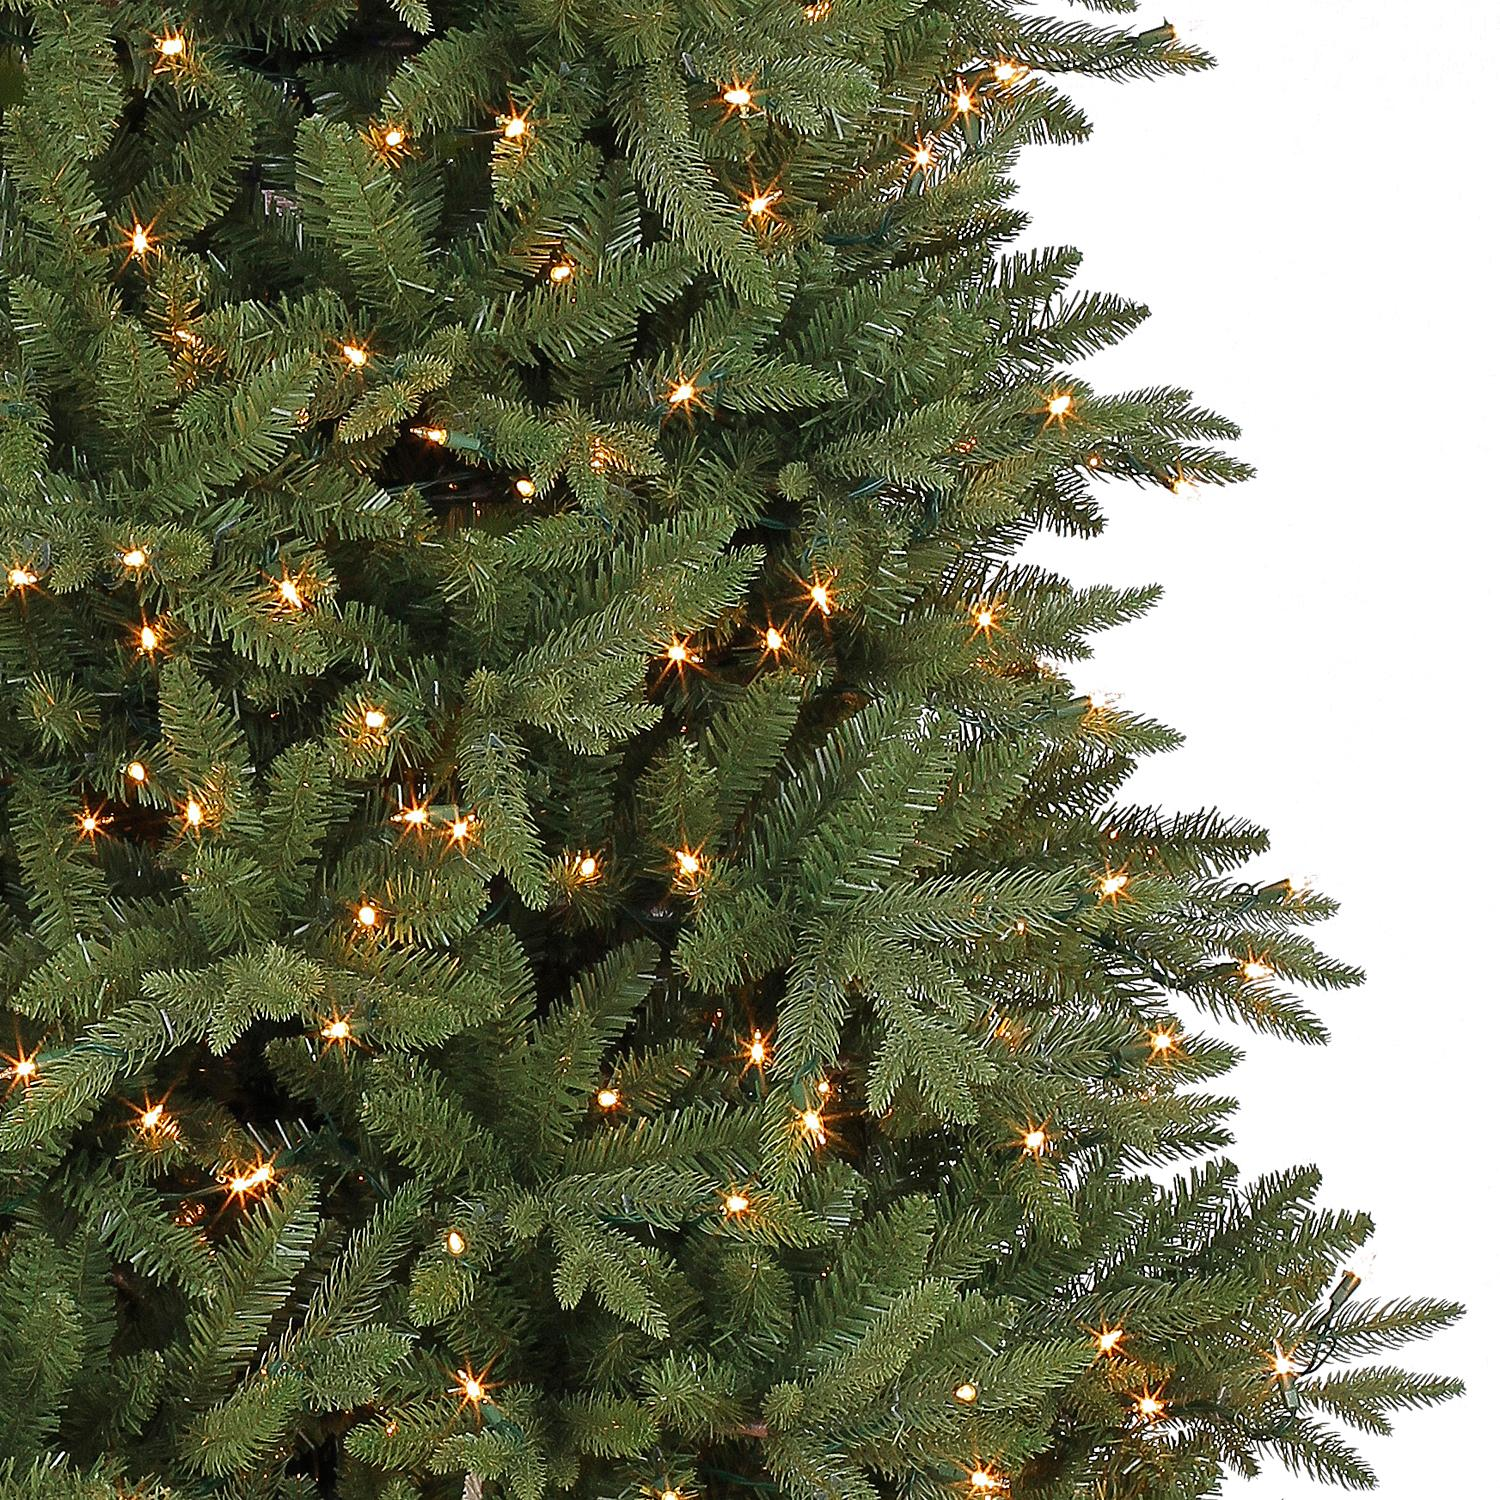 Amazon.com: Evergreen classics TG76P3205C06 Christmas Tree ...